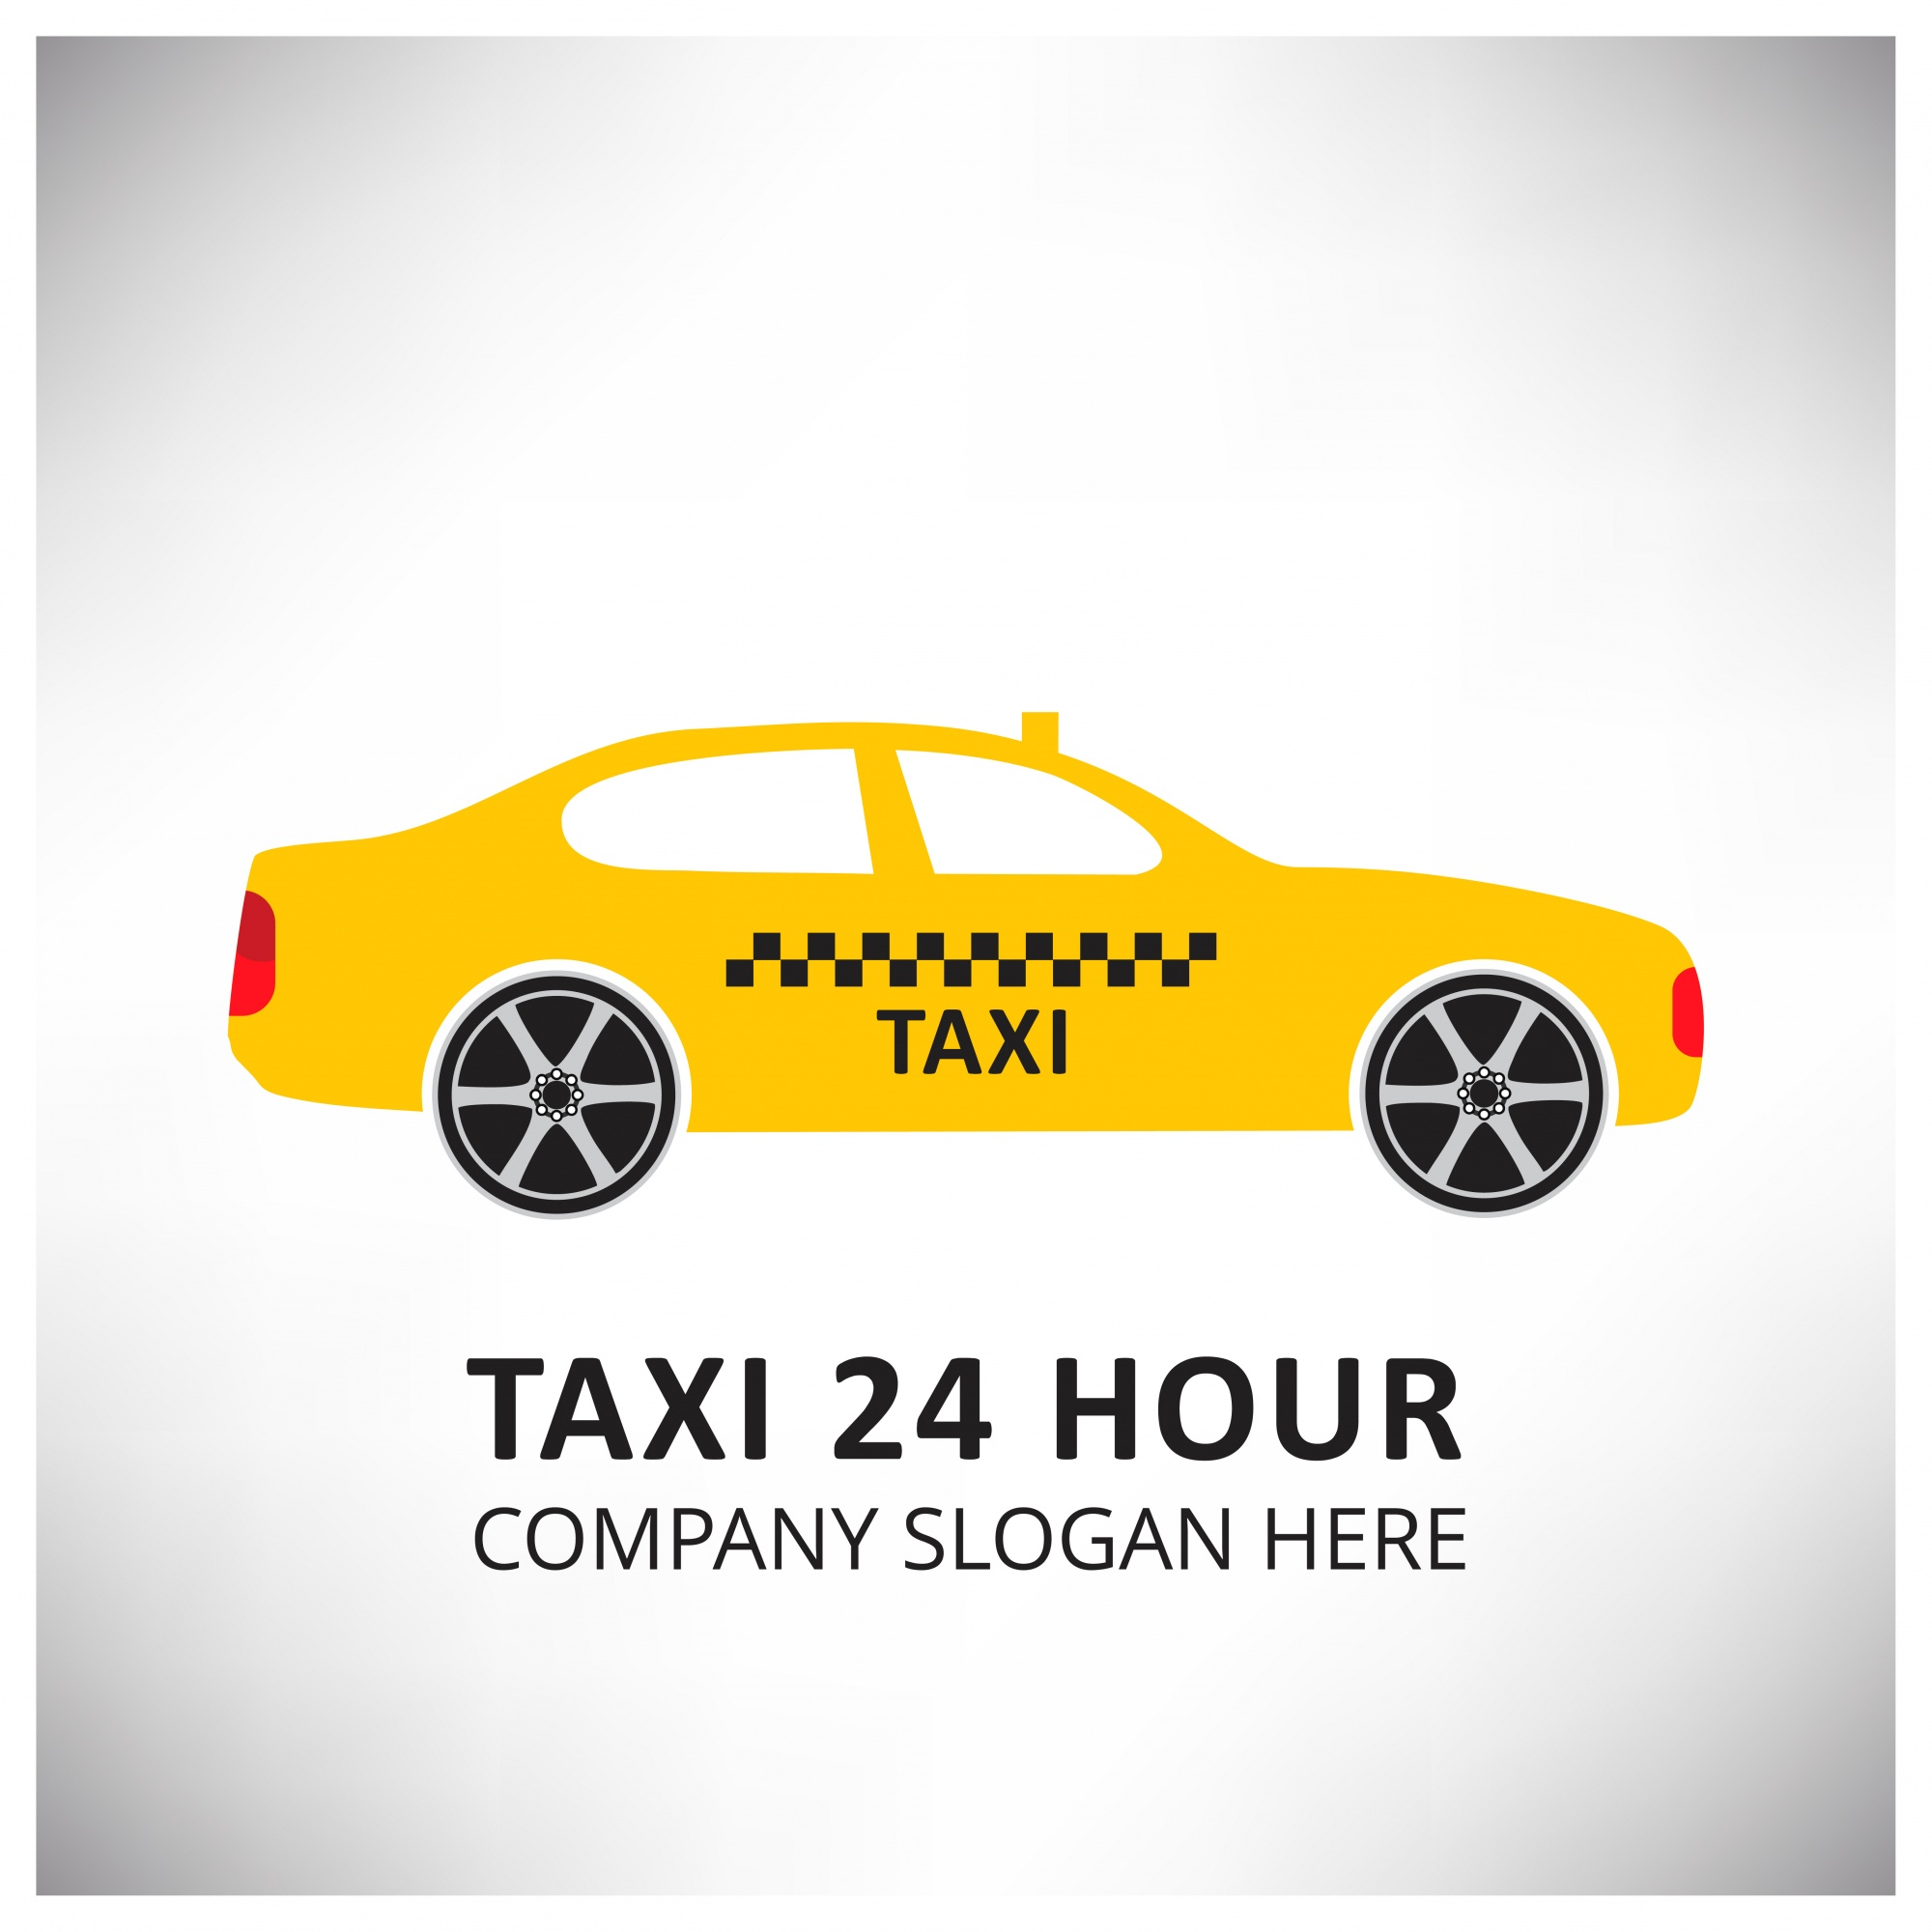 Taxi Icon Taxi Service 24 Hour Serrvice Yellow Taxi Car Fond blanc et gris